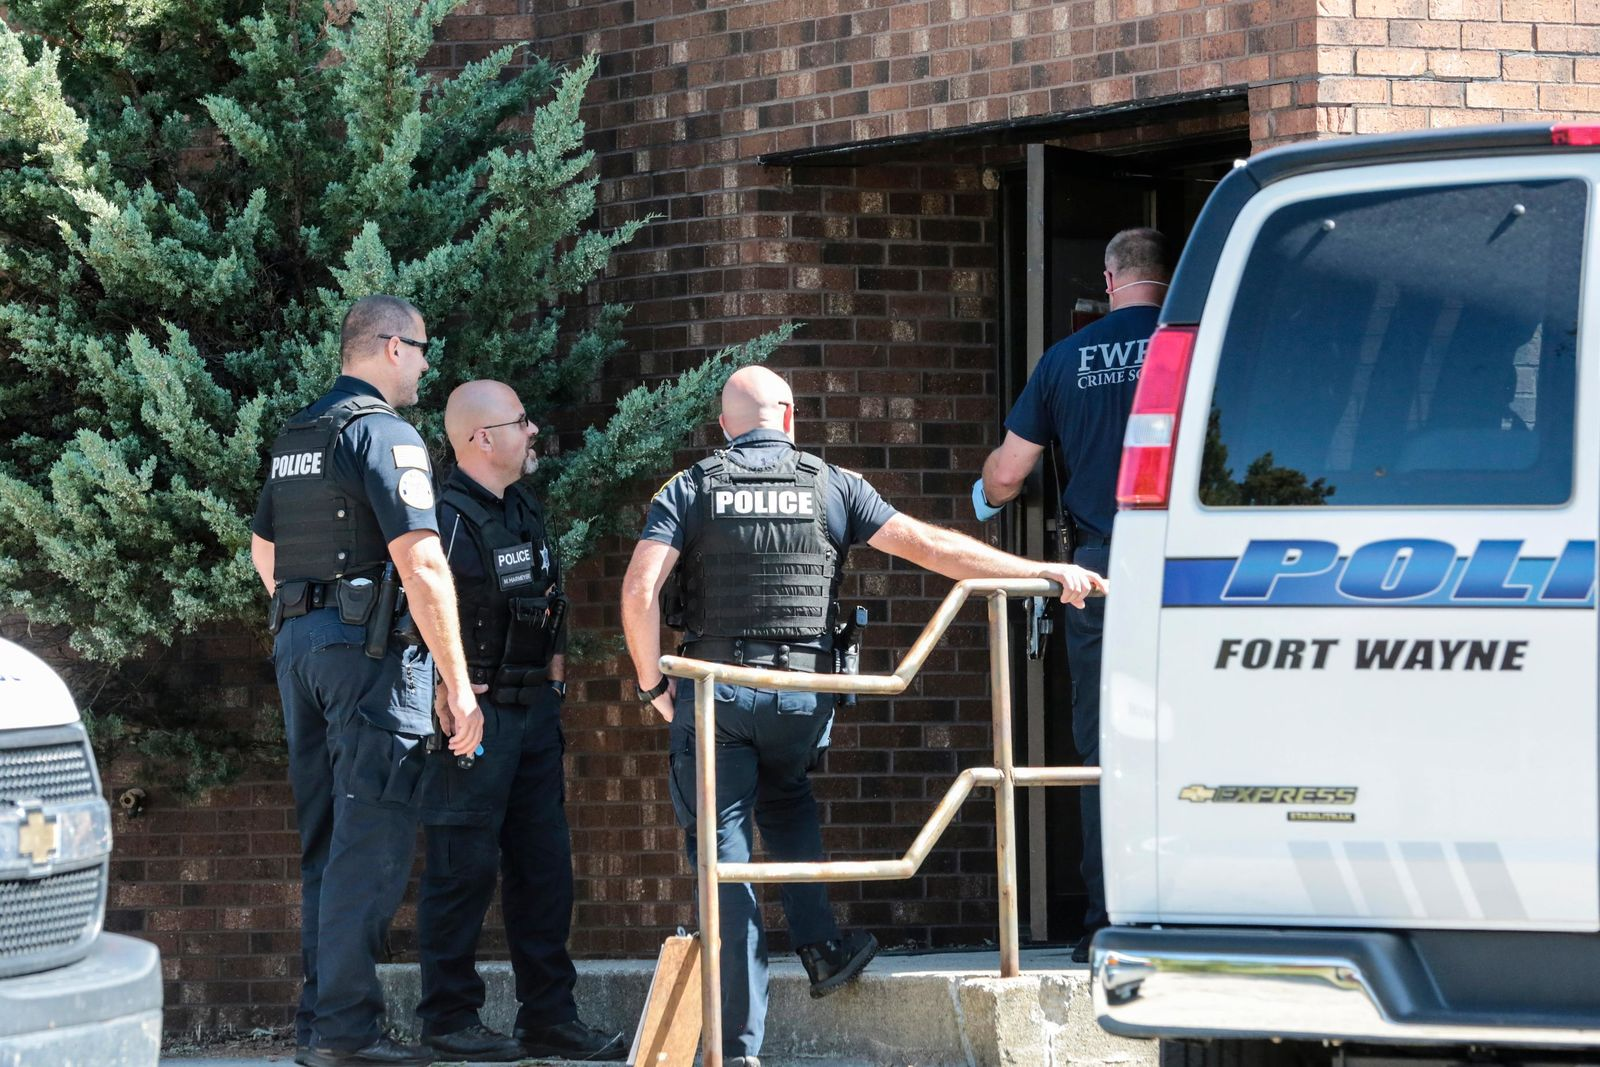 Officers from the Fort Wayne Police Department search the former site of an abortion clinic owned by Dr. Ulrich Klopfer, Thursday, Sept. 19, 2019, in Fort Wayne, Ind. St. Joseph County Prosecutor Ken Cotter said Thursday that authorities have found no fetal remains at a shuttered abortion clinic once operated by the late abortion doctor whose Illinois property was found to contain more than 2,200 medically preserved fetal remains. (Eric Ginnard/The Herald-News via AP)